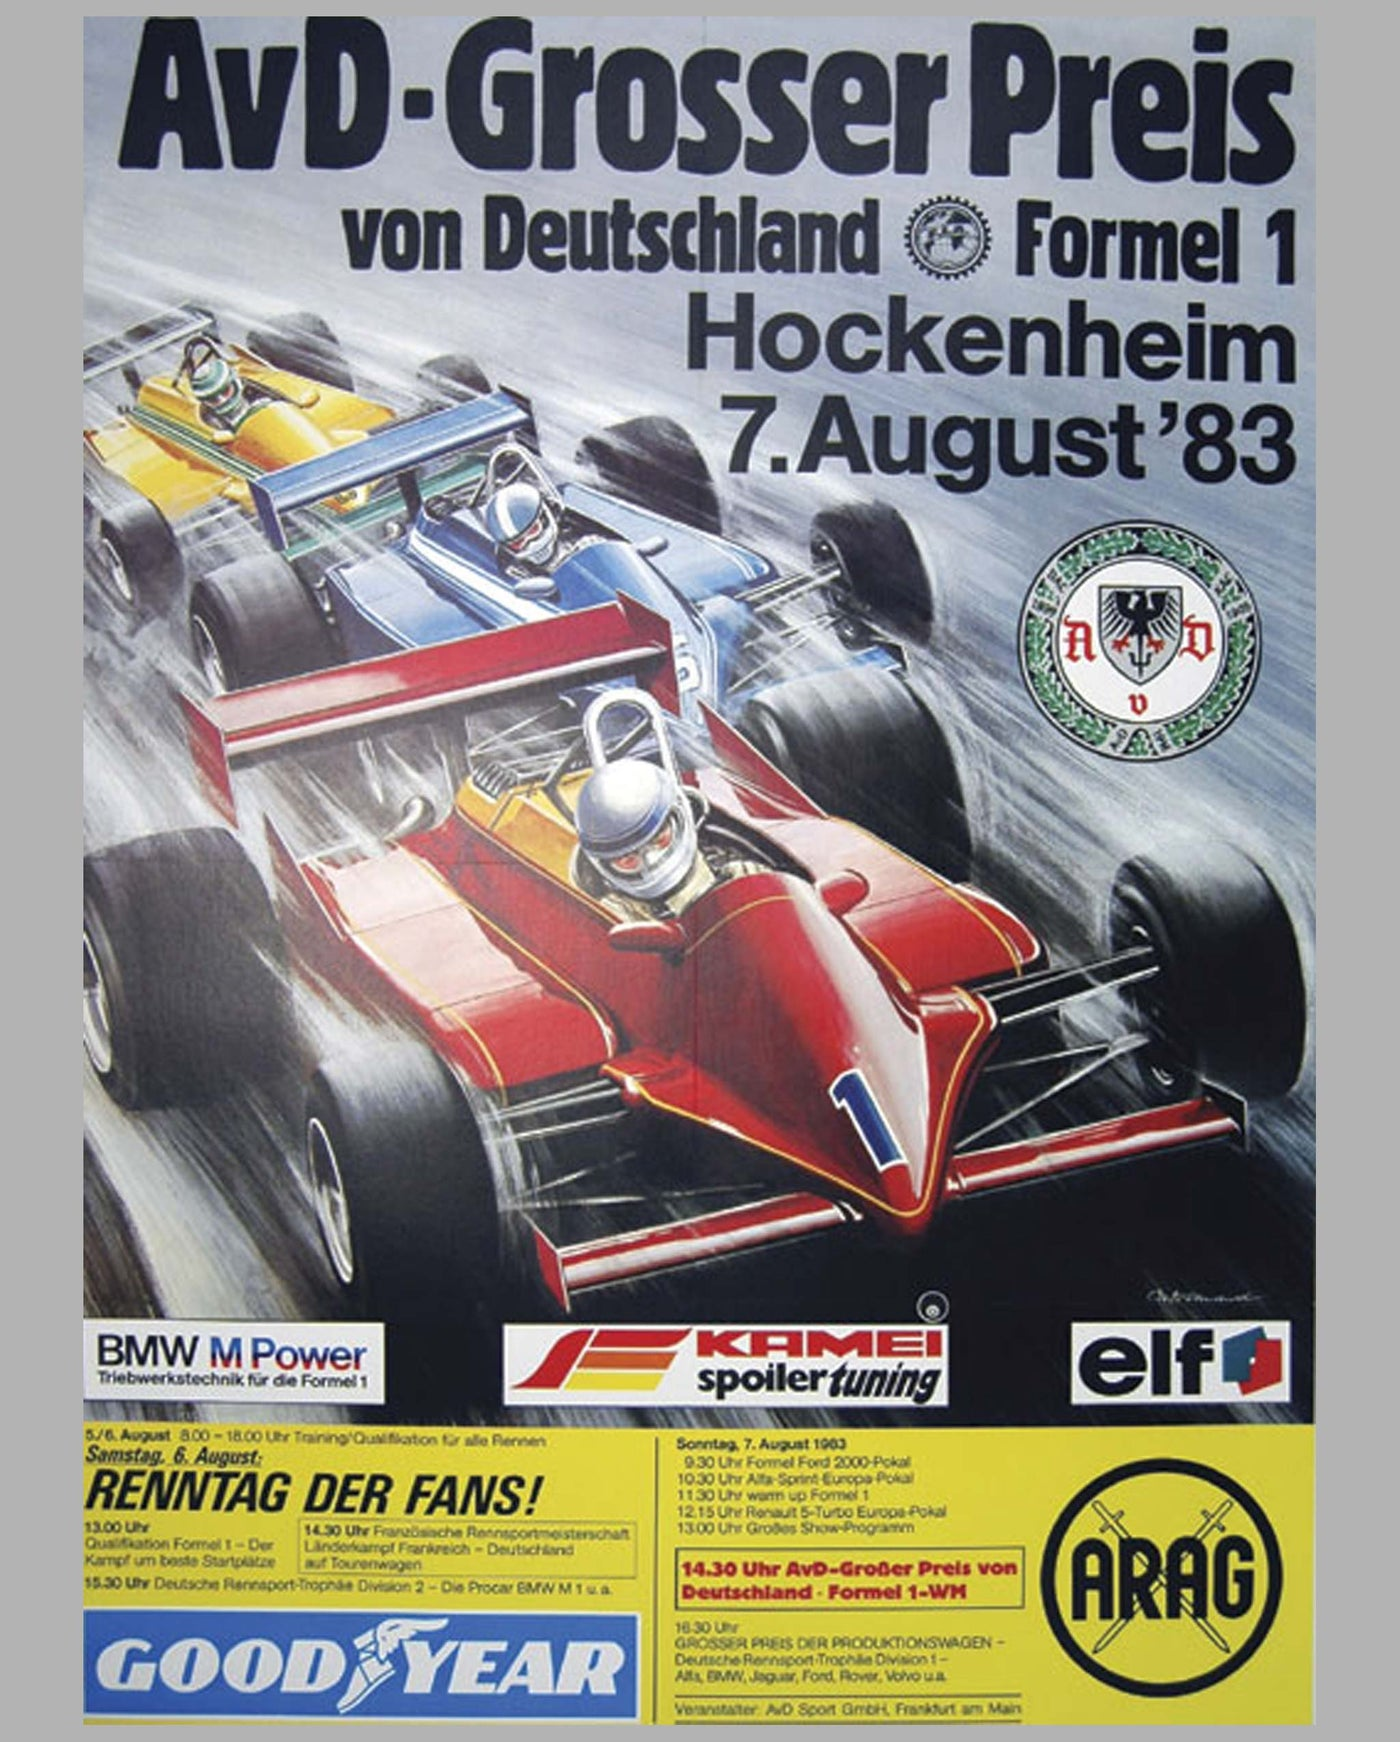 GP of Germany - Hockenheim 1983 poster by Carlo Demand